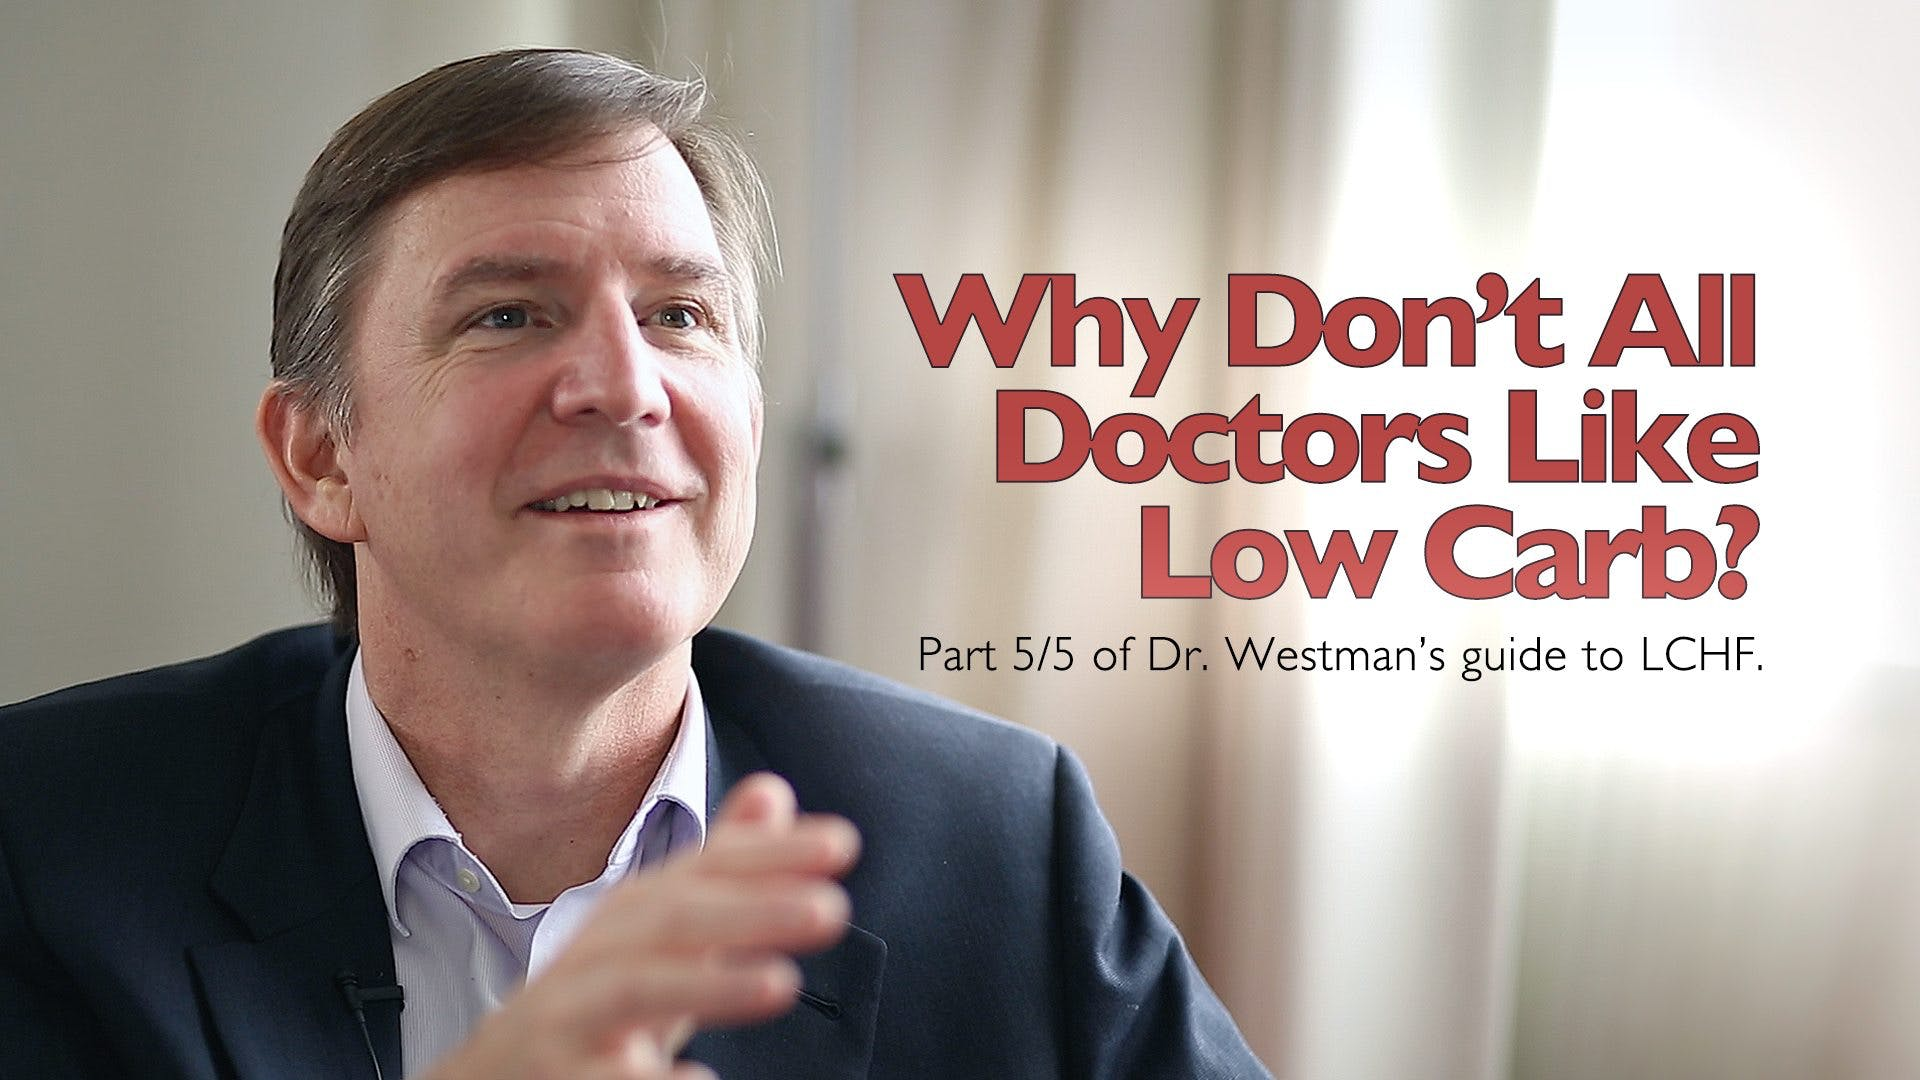 Why don't all doctors like low carb?